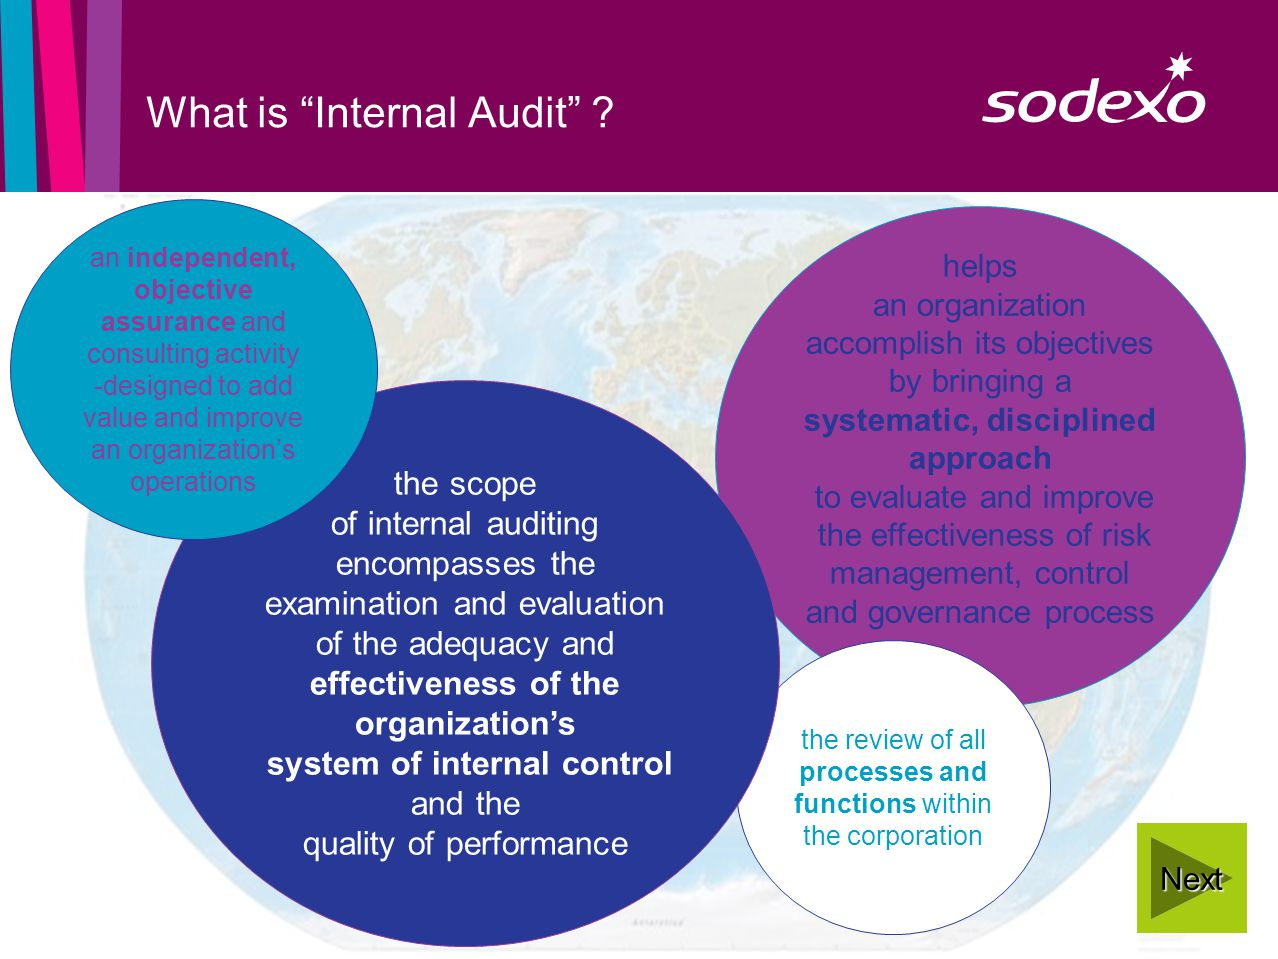 page 2 helps an organization accomplish its objectives by bringing a systematic, disciplined approach to evaluate and improve the effectiveness of risk management, control and governance process What is Internal Audit .